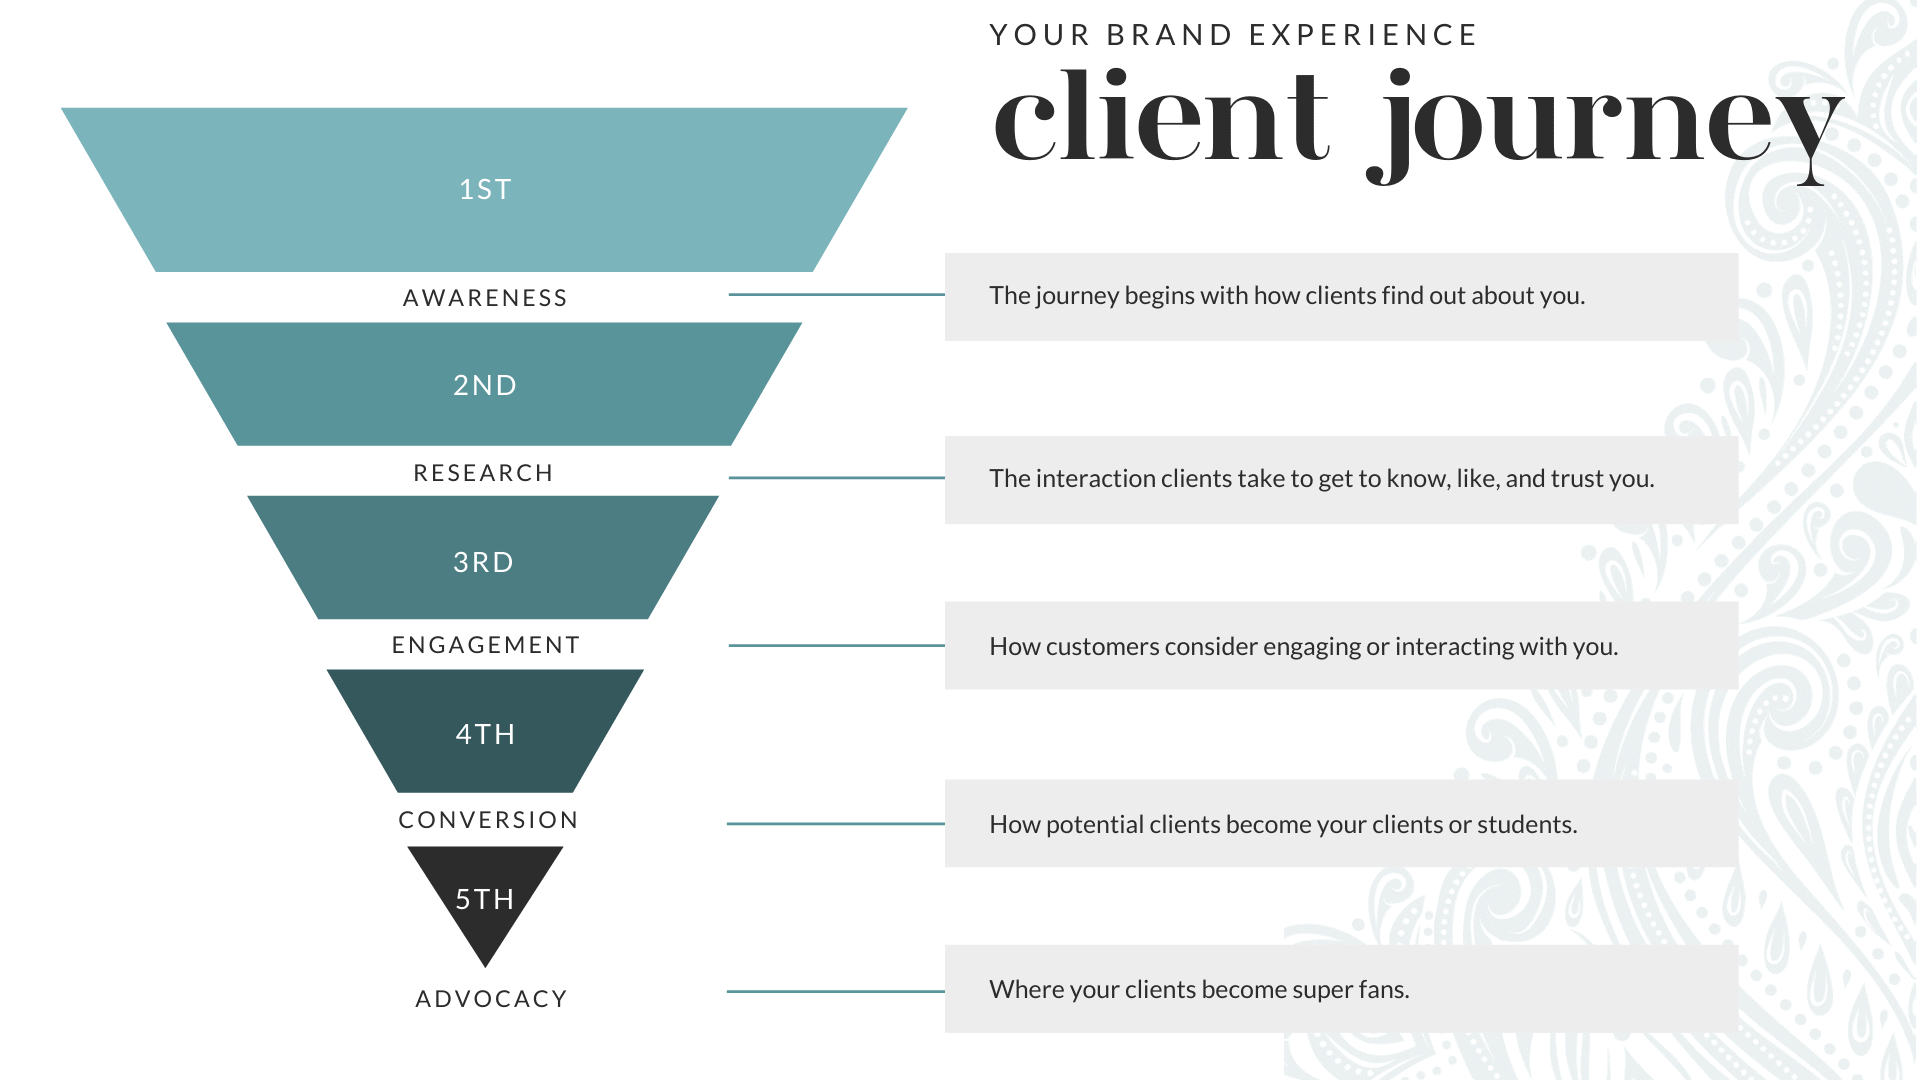 Understanding your client journey is an important part to creating a brand and website that transforms visitors into clients.